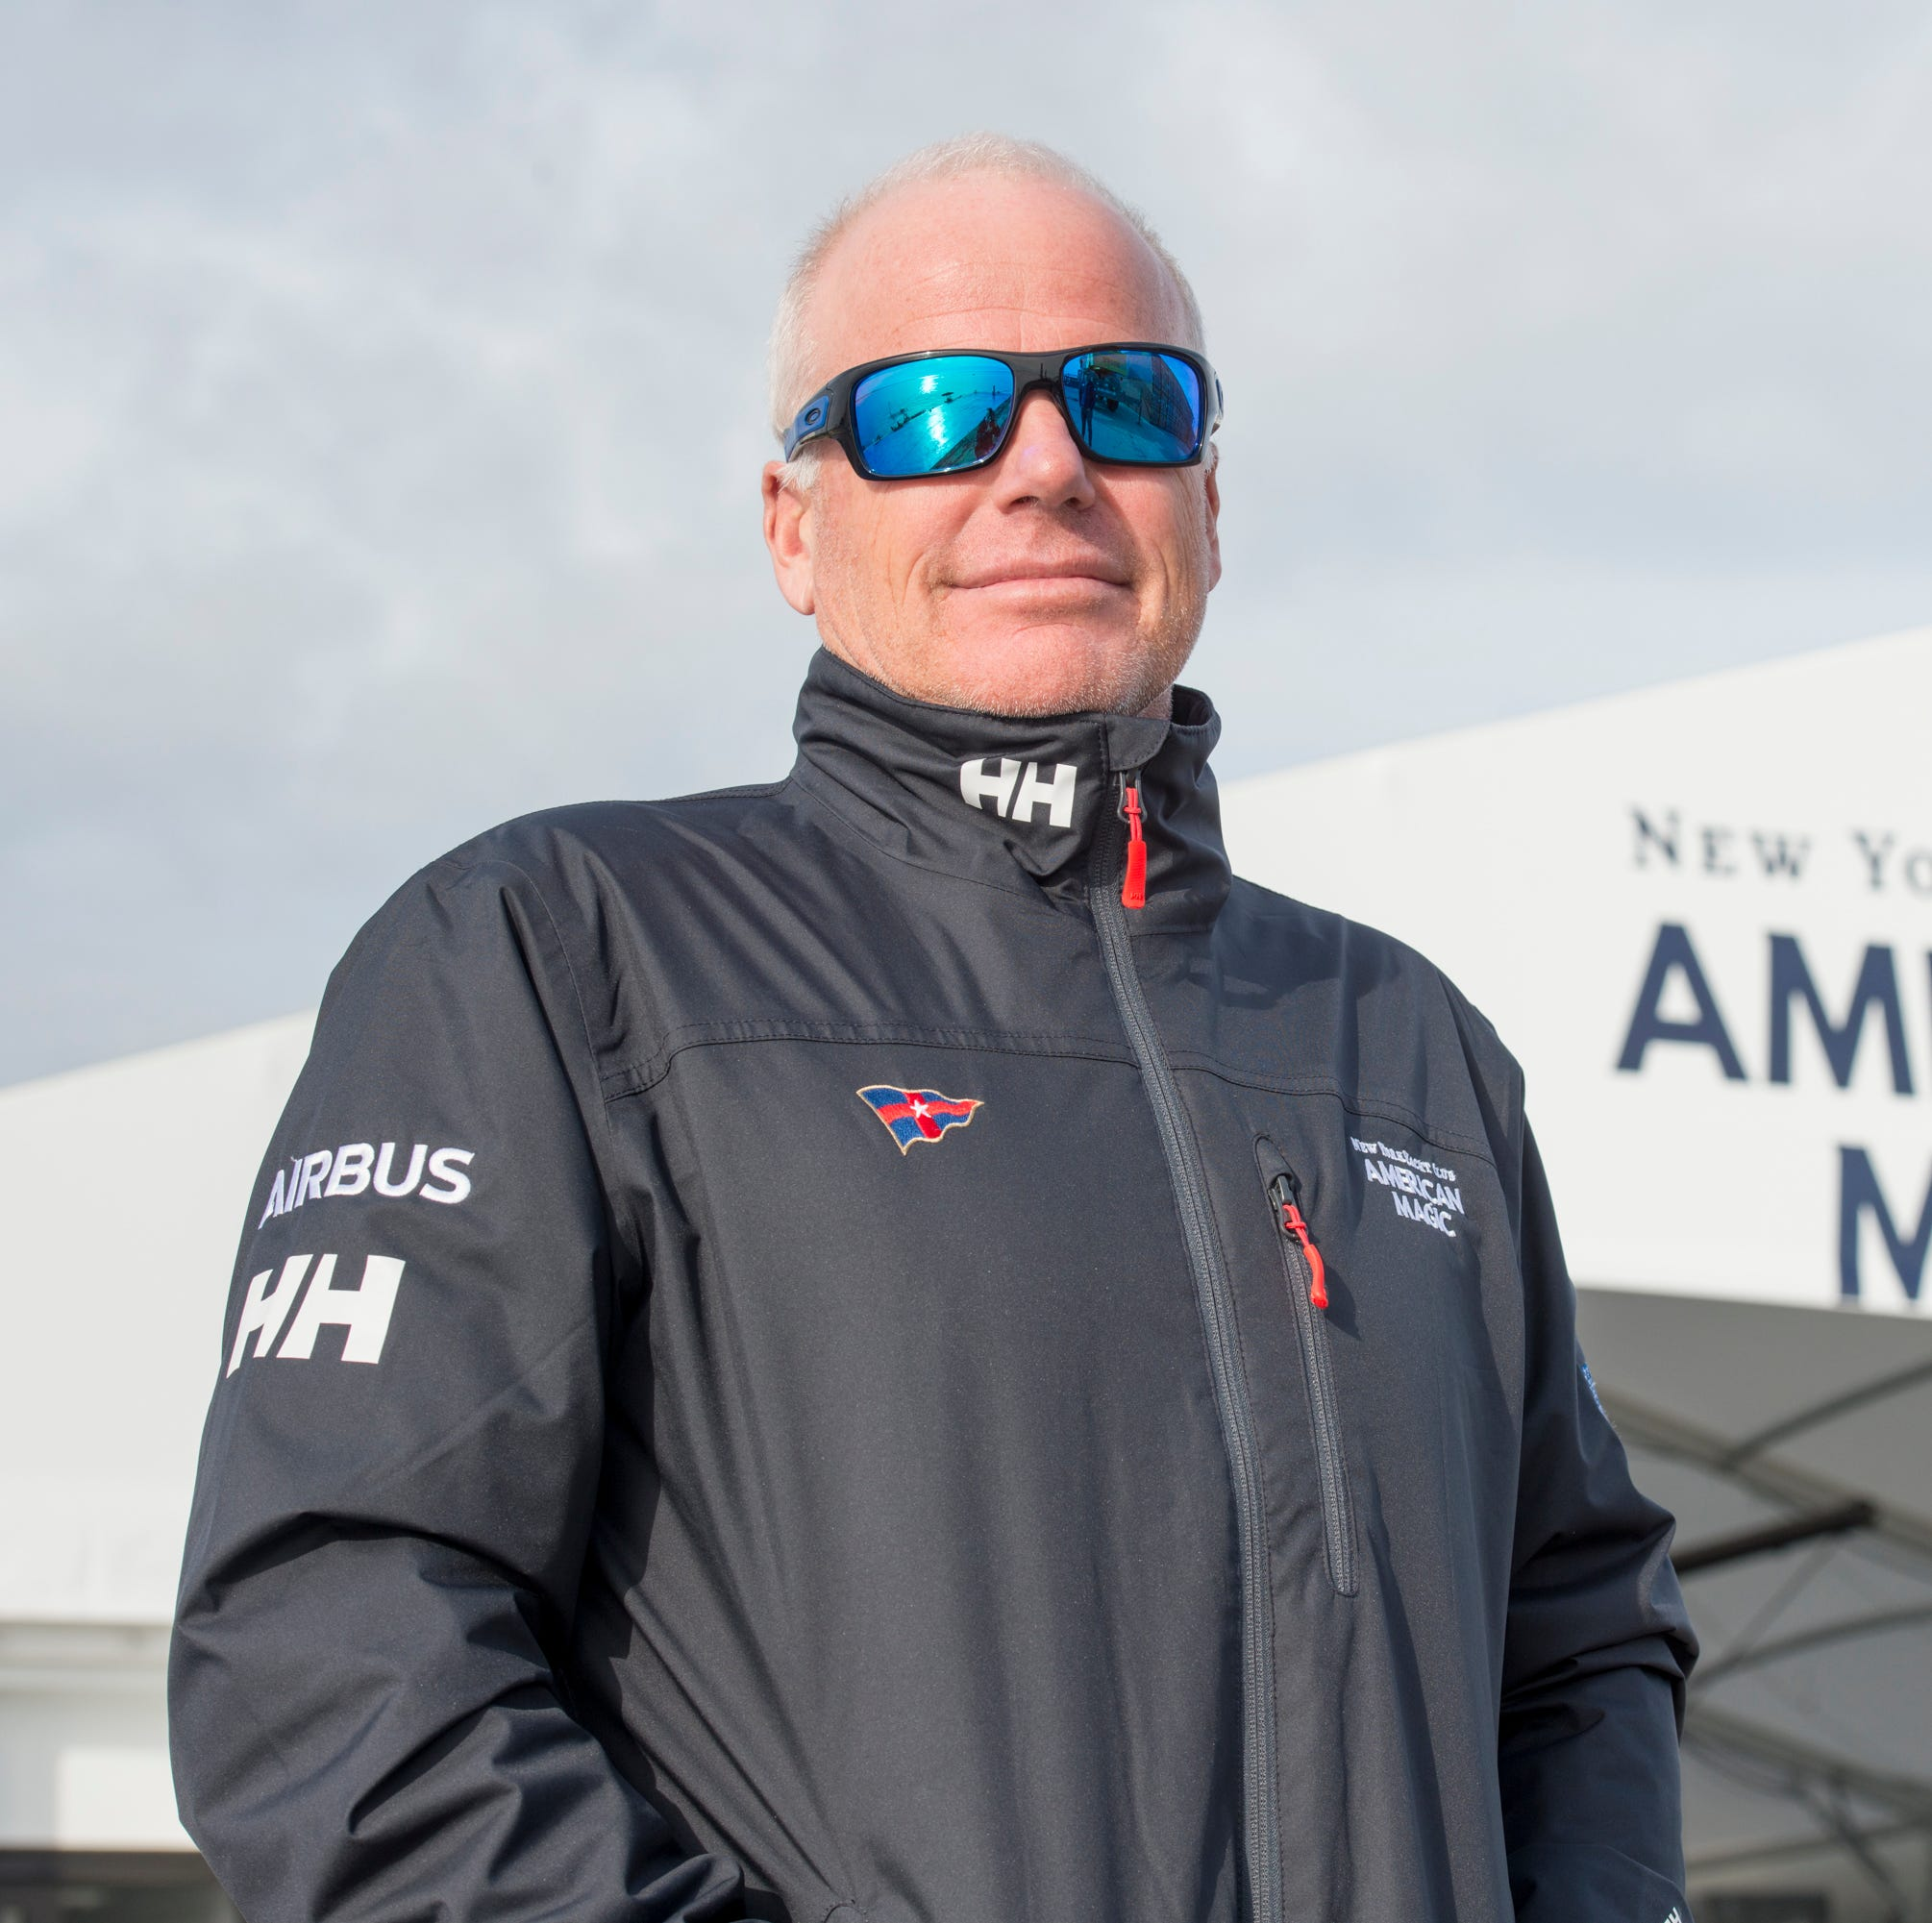 World class America's Cup team is training in Pensacola